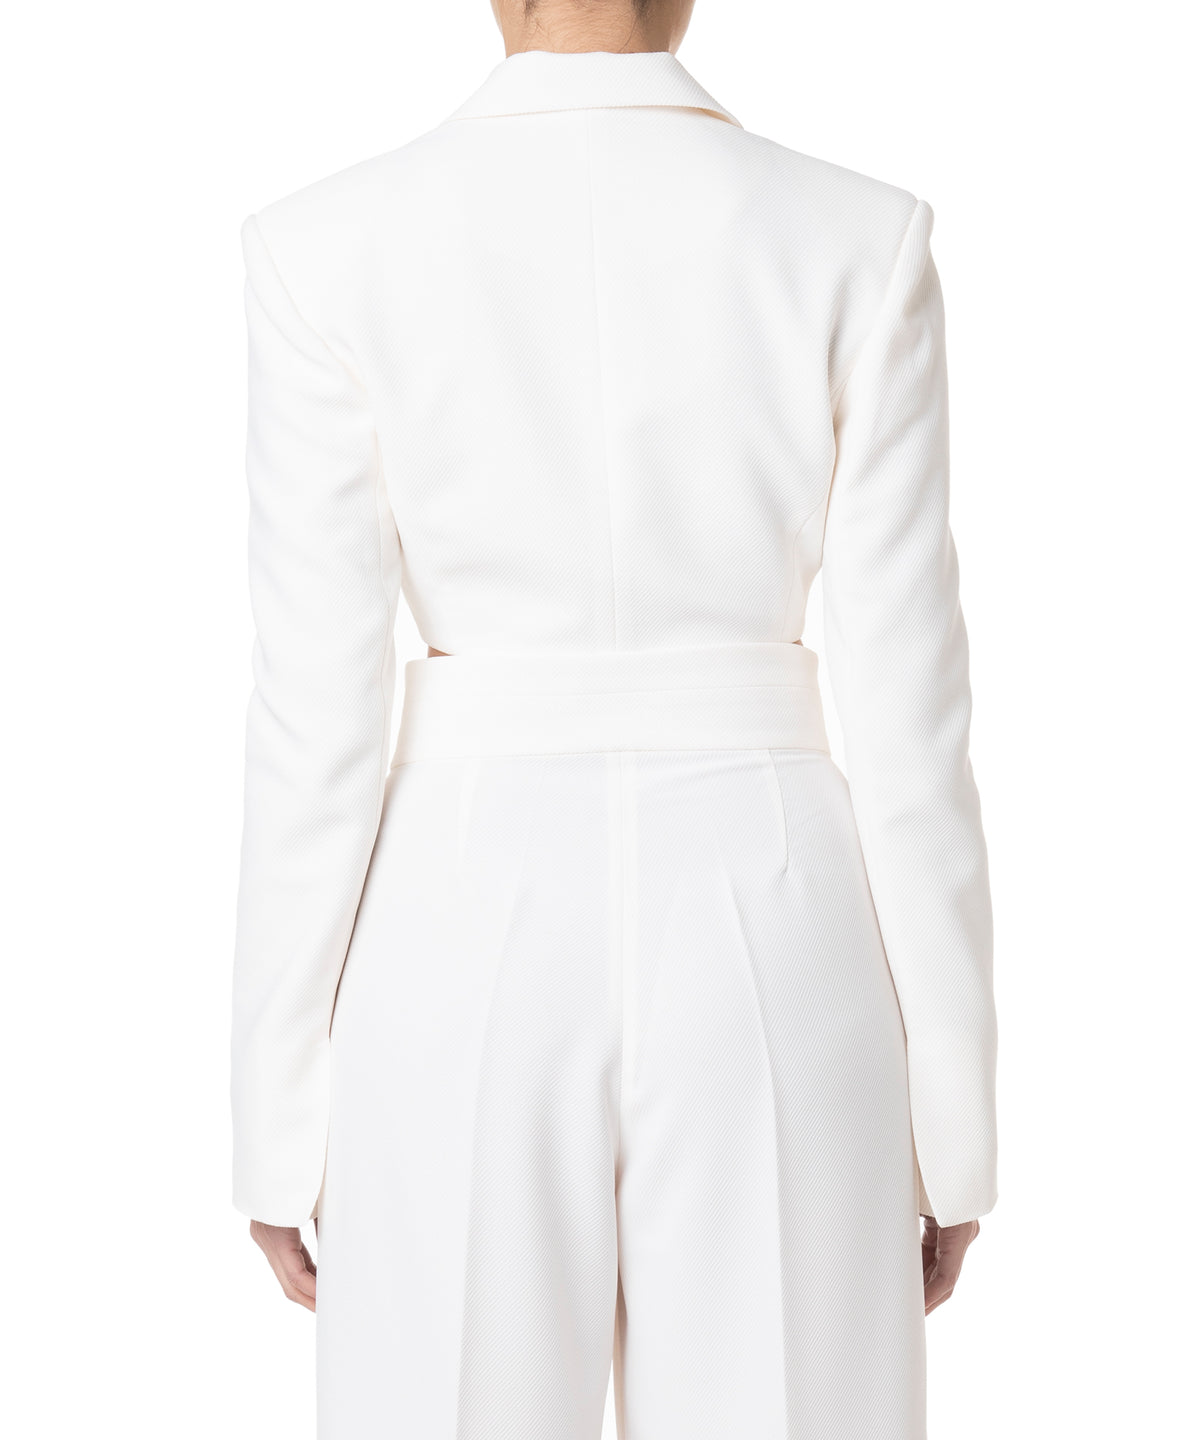 Marianna Senchina Cropped Jacket Women Milky Double Breasted